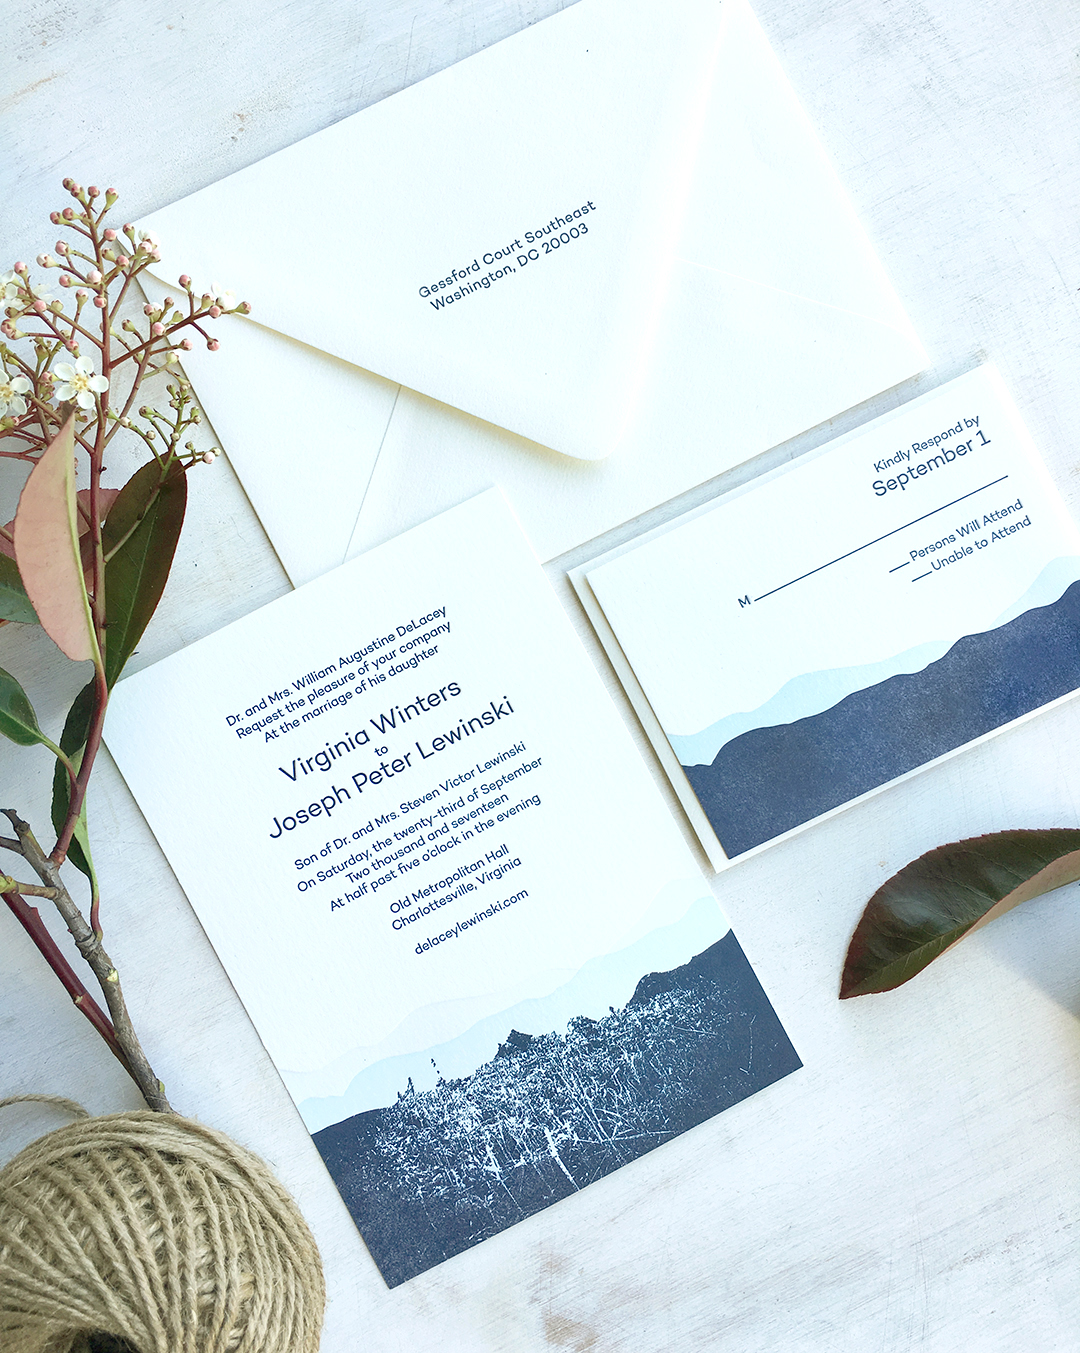 Ginny & Joe: Letterpress Printed Wedding invitations with blue mountain illustrations.